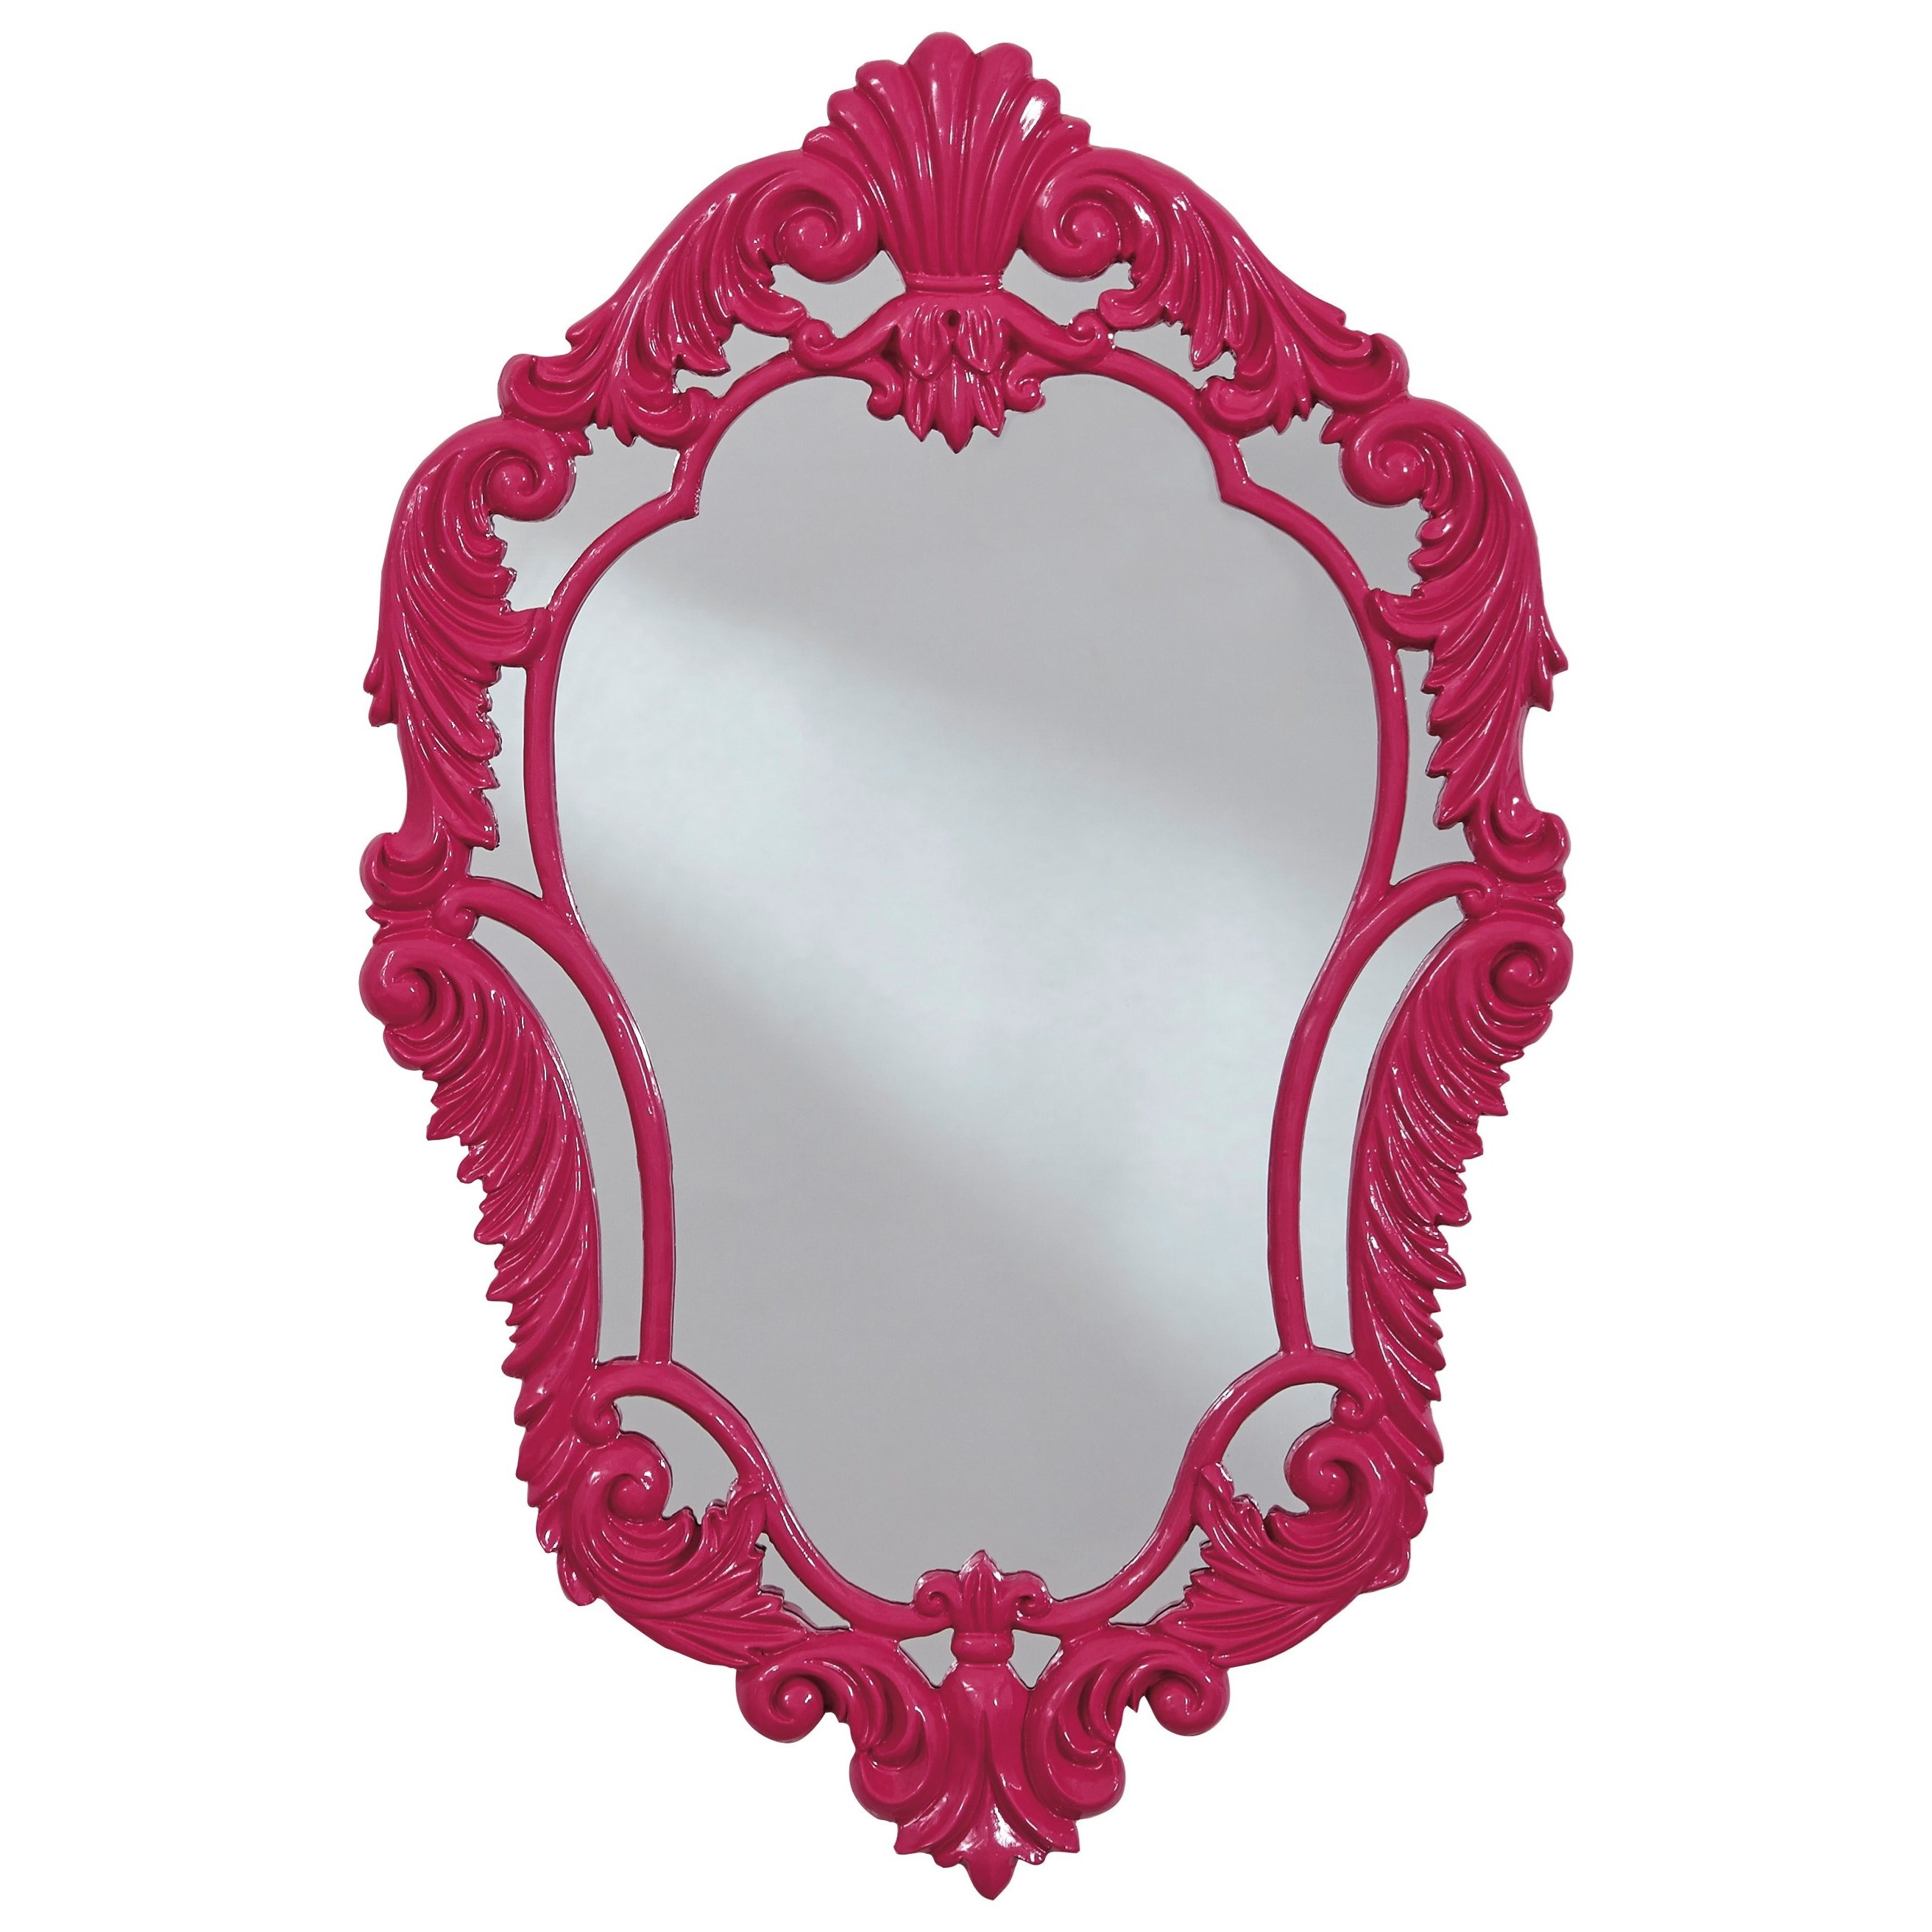 Signature Design by Ashley Accent Mirrors Diza Pink Accent Mirror - Item Number: A8010103